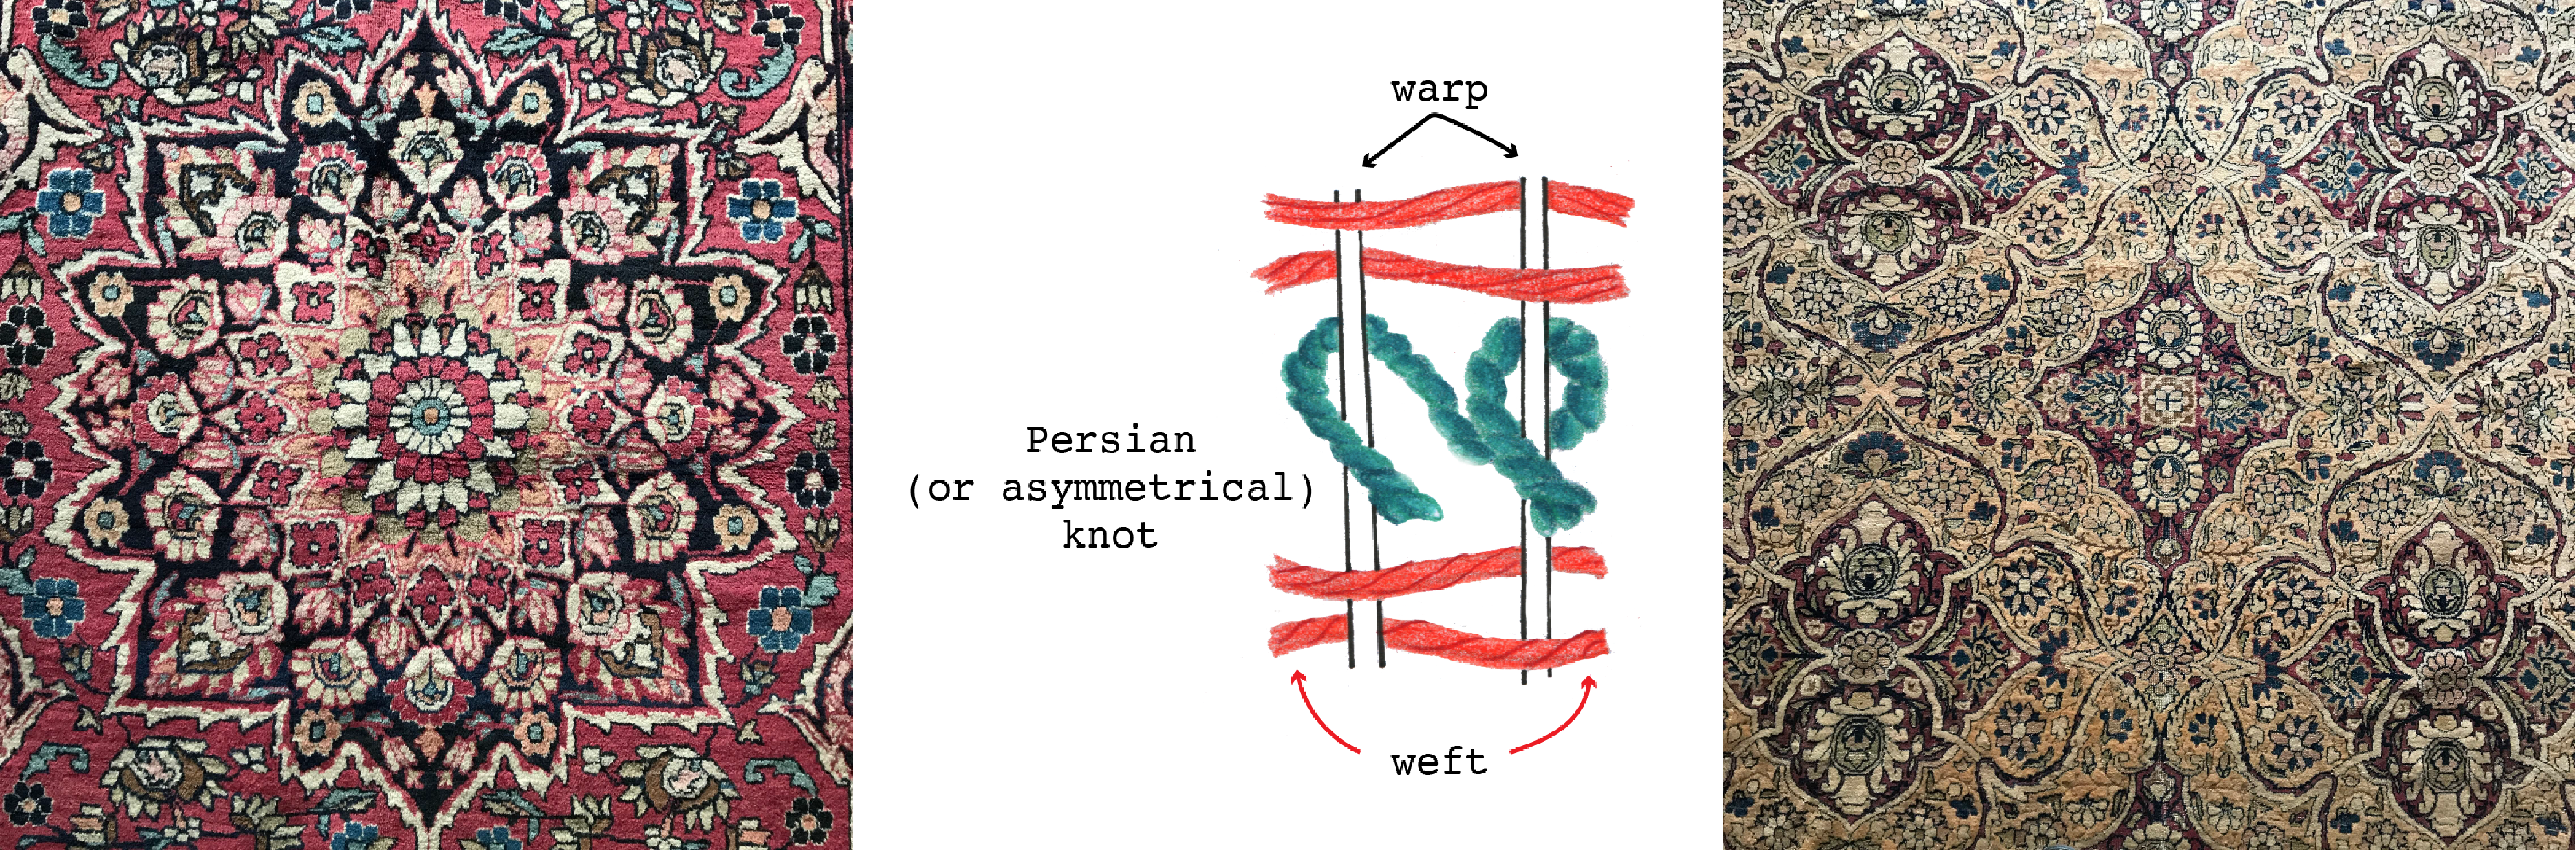 Persian Laver Kerman as examples of a Persian or asymmetrical knot, also illustrated